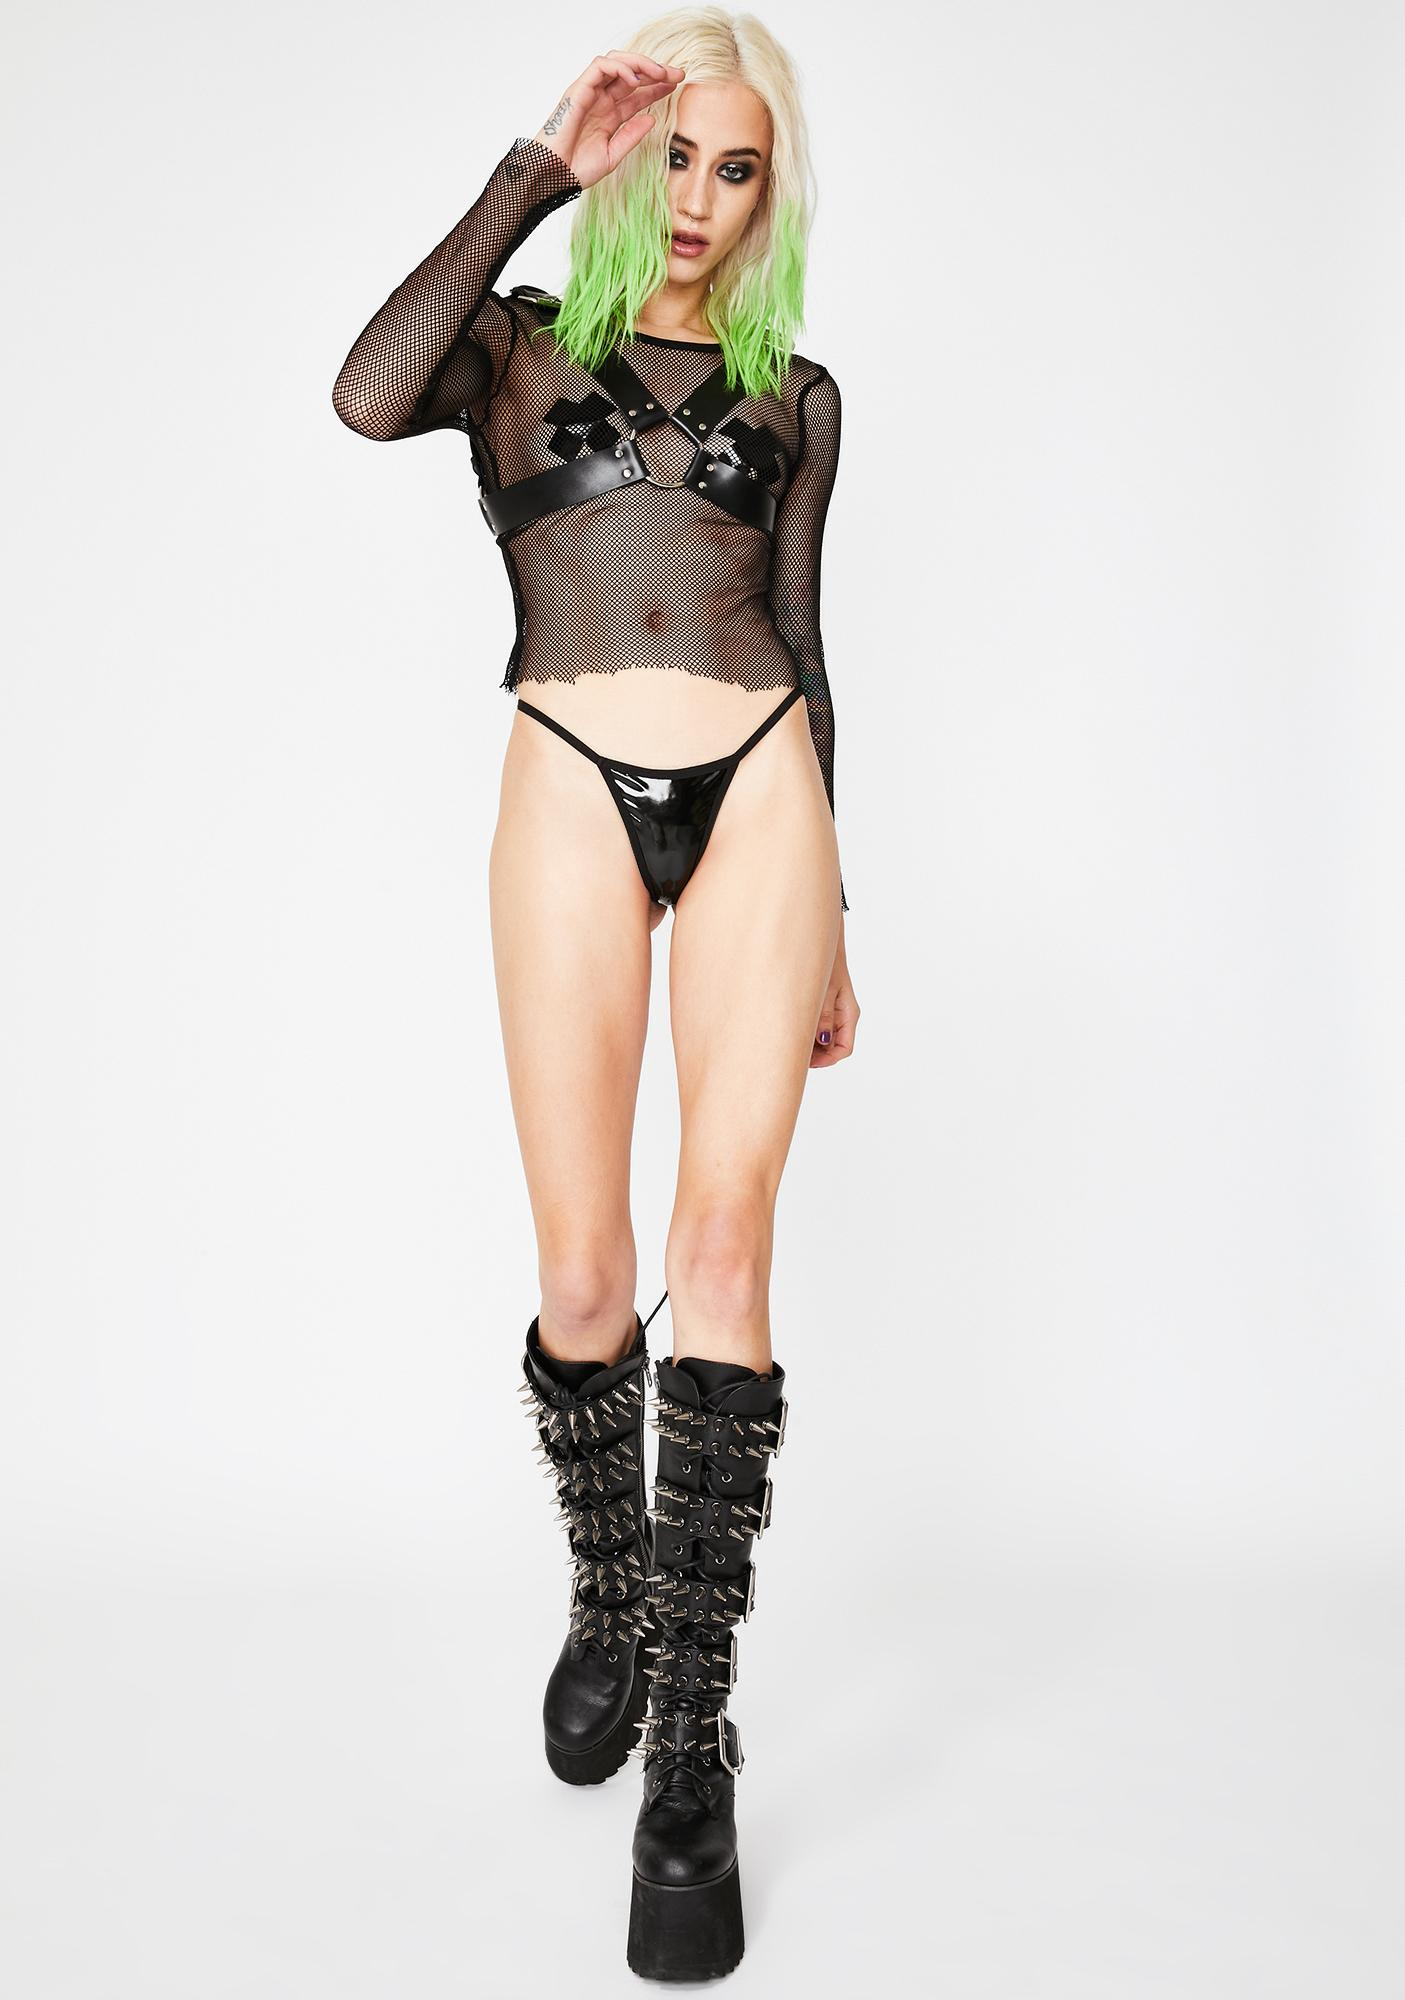 Neva Nude Black Cross Pasties N' Thong Set